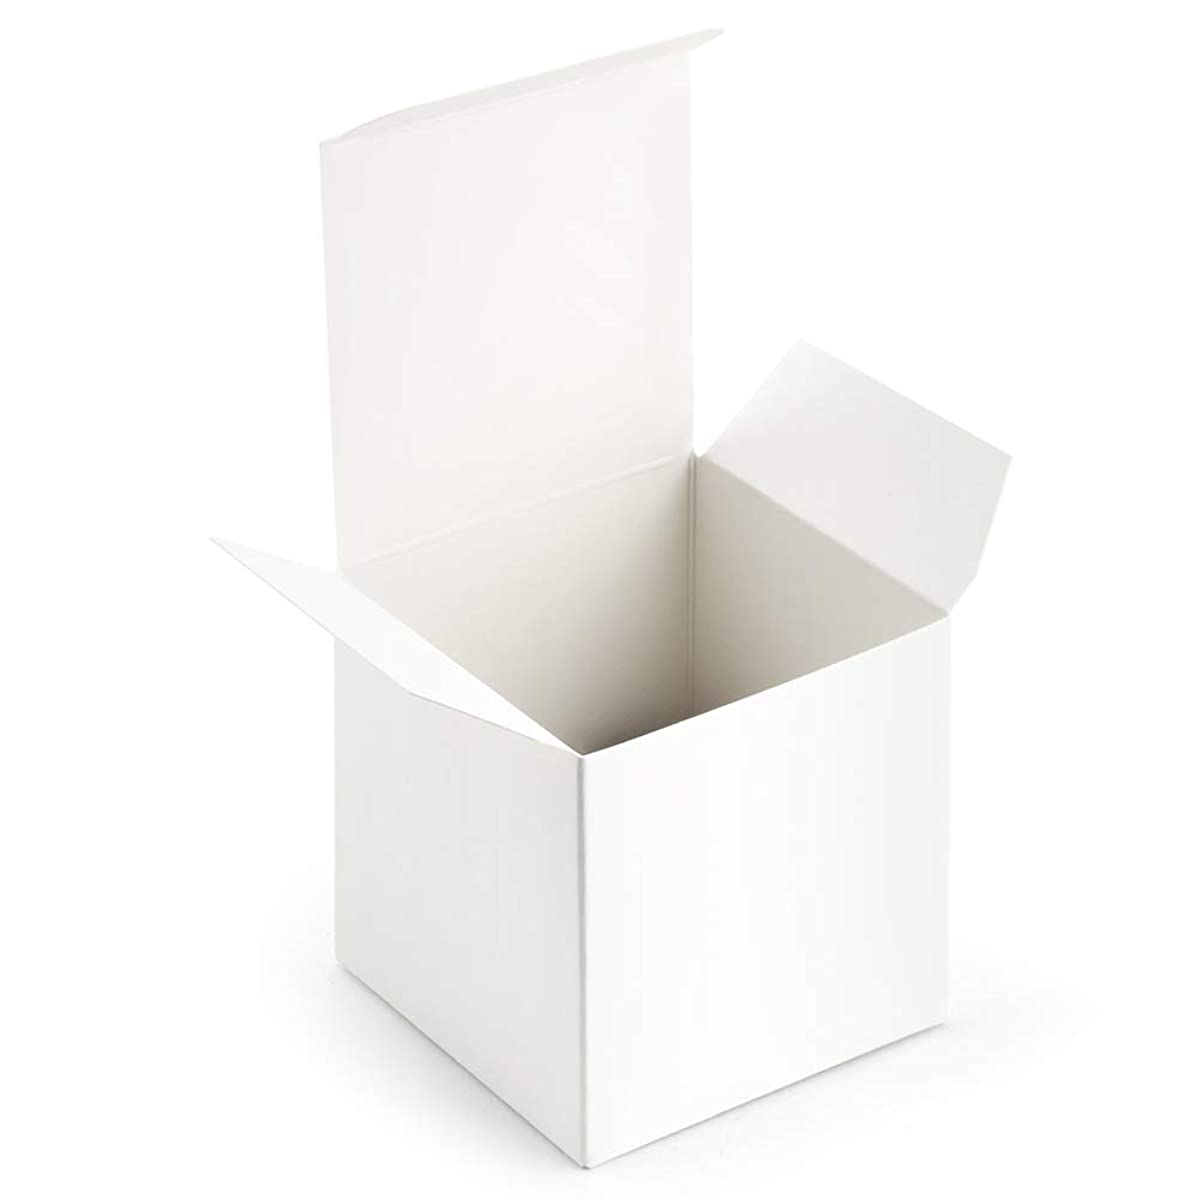 ValBox 3x3x3 White Gift Boxes 50pcs Recycled Paper Cube Boxes with Lids for Gifts, Crafting, Cupcake Boxes   Easy Assemble Boxes for Party Favor